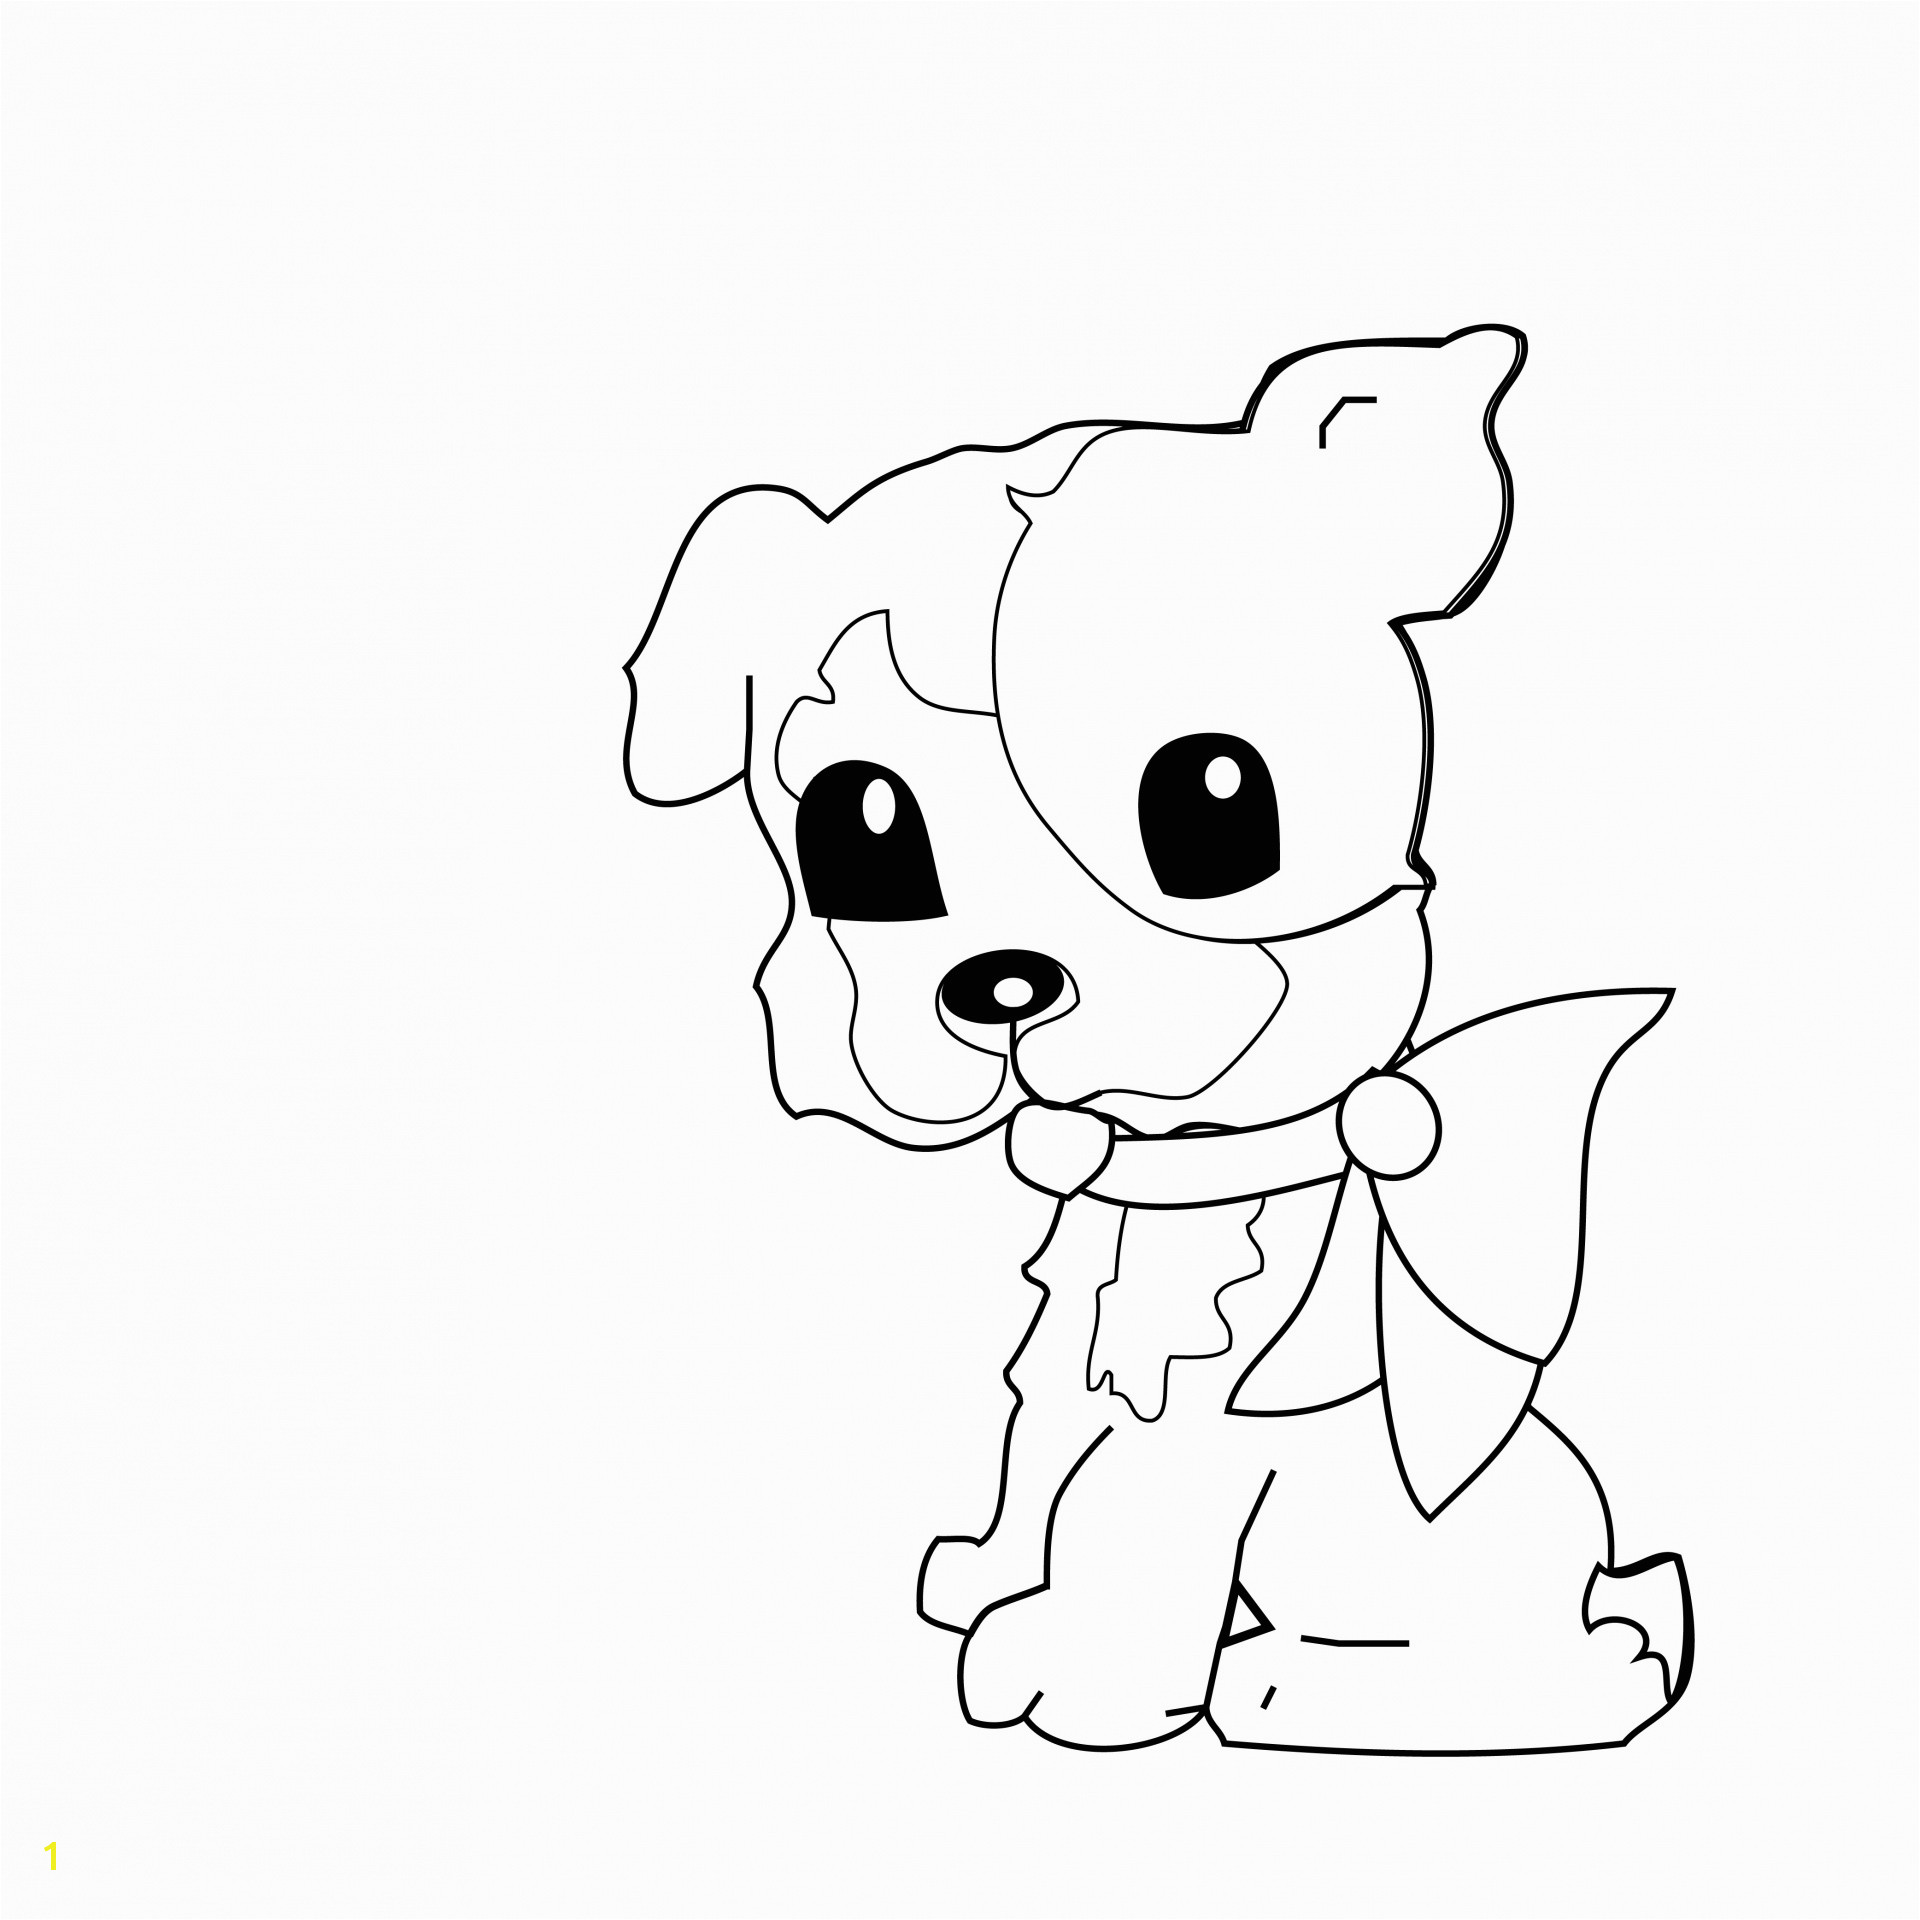 Cute Christmas Puppy Coloring Pages Dog Coloring Page for Kids Free Stock Public